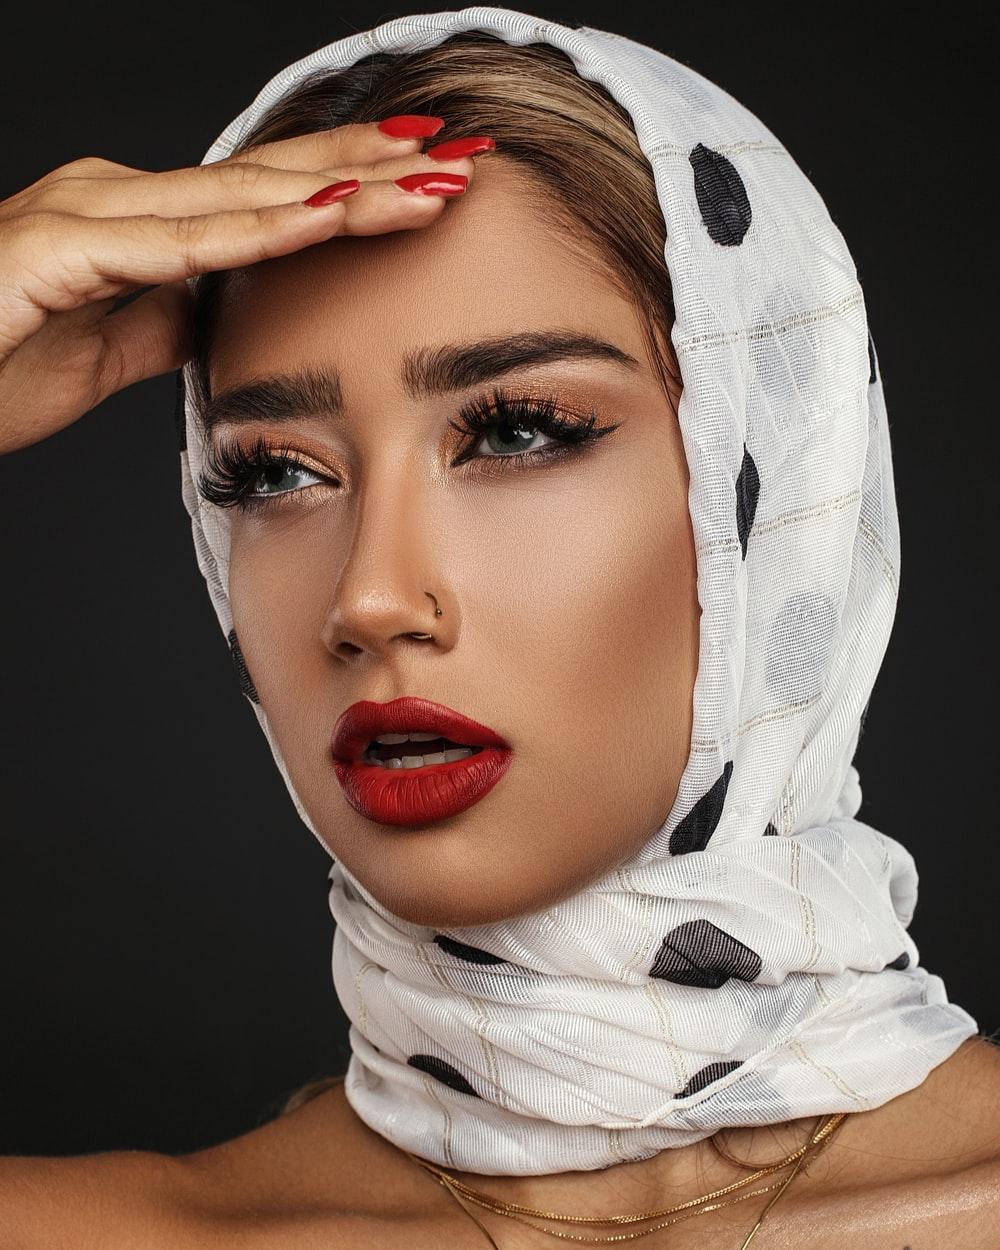 woman in white and black hijab